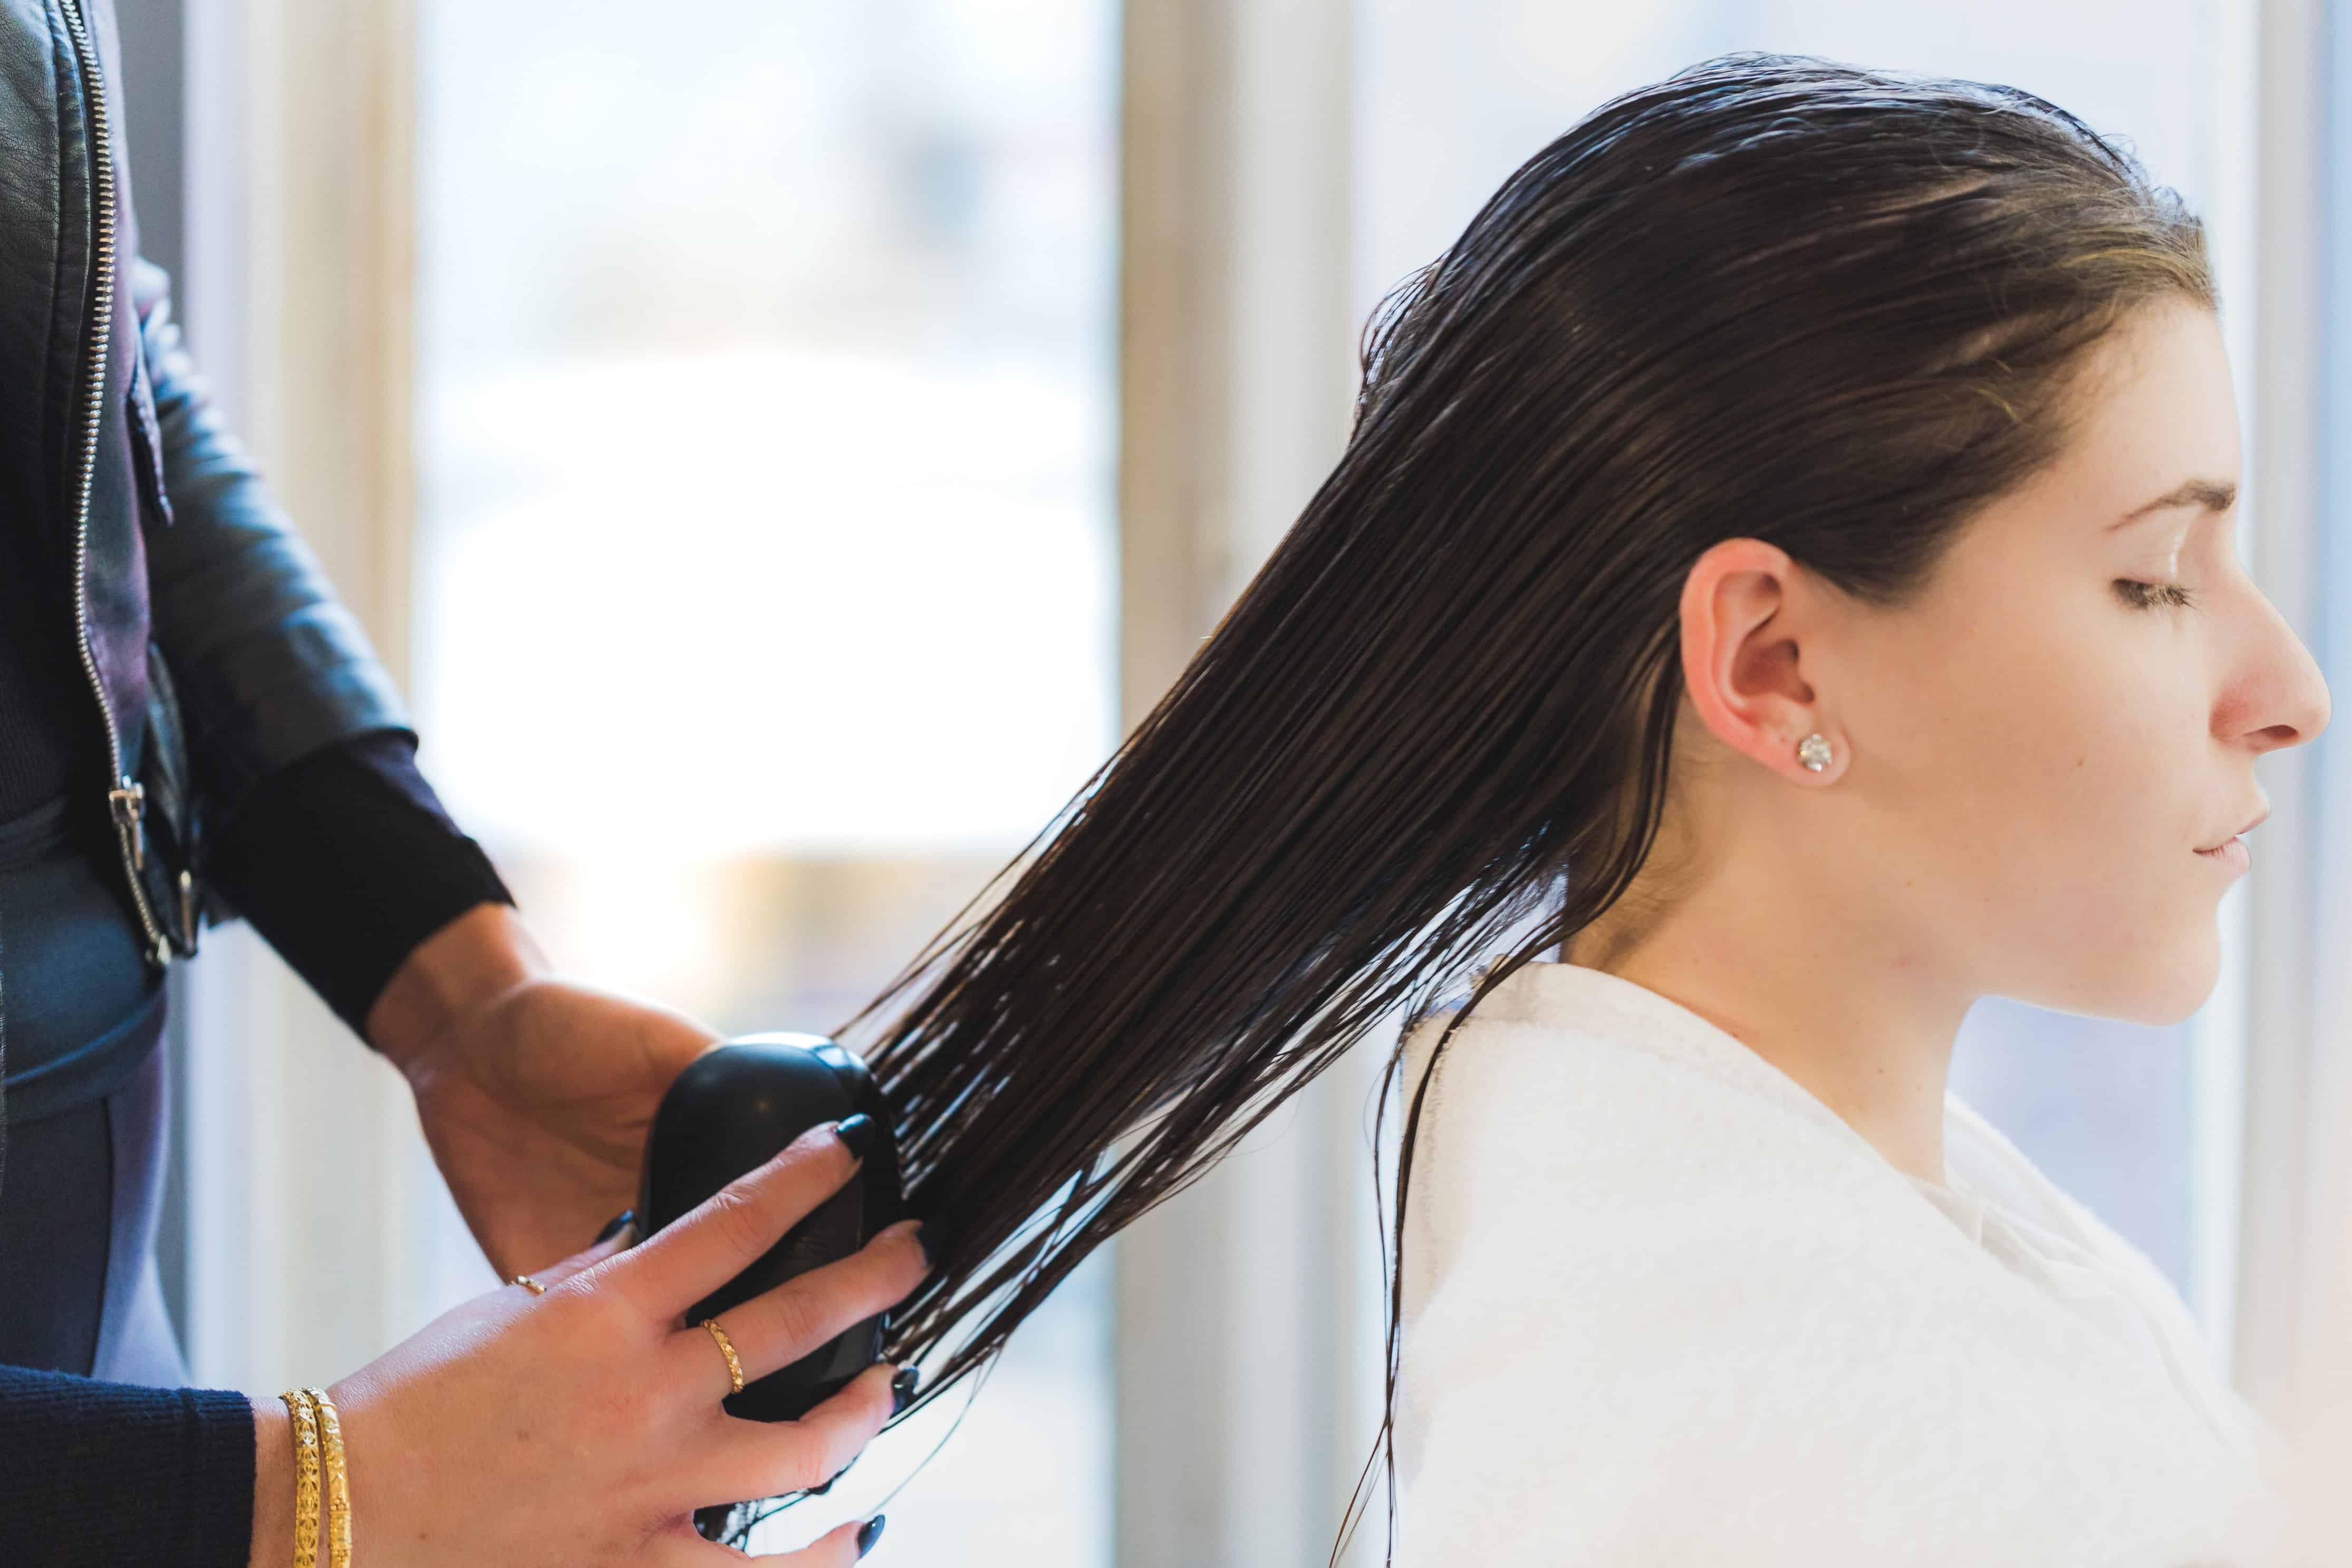 3 Ways To Differentiate Your Salon Business From Your Competitors